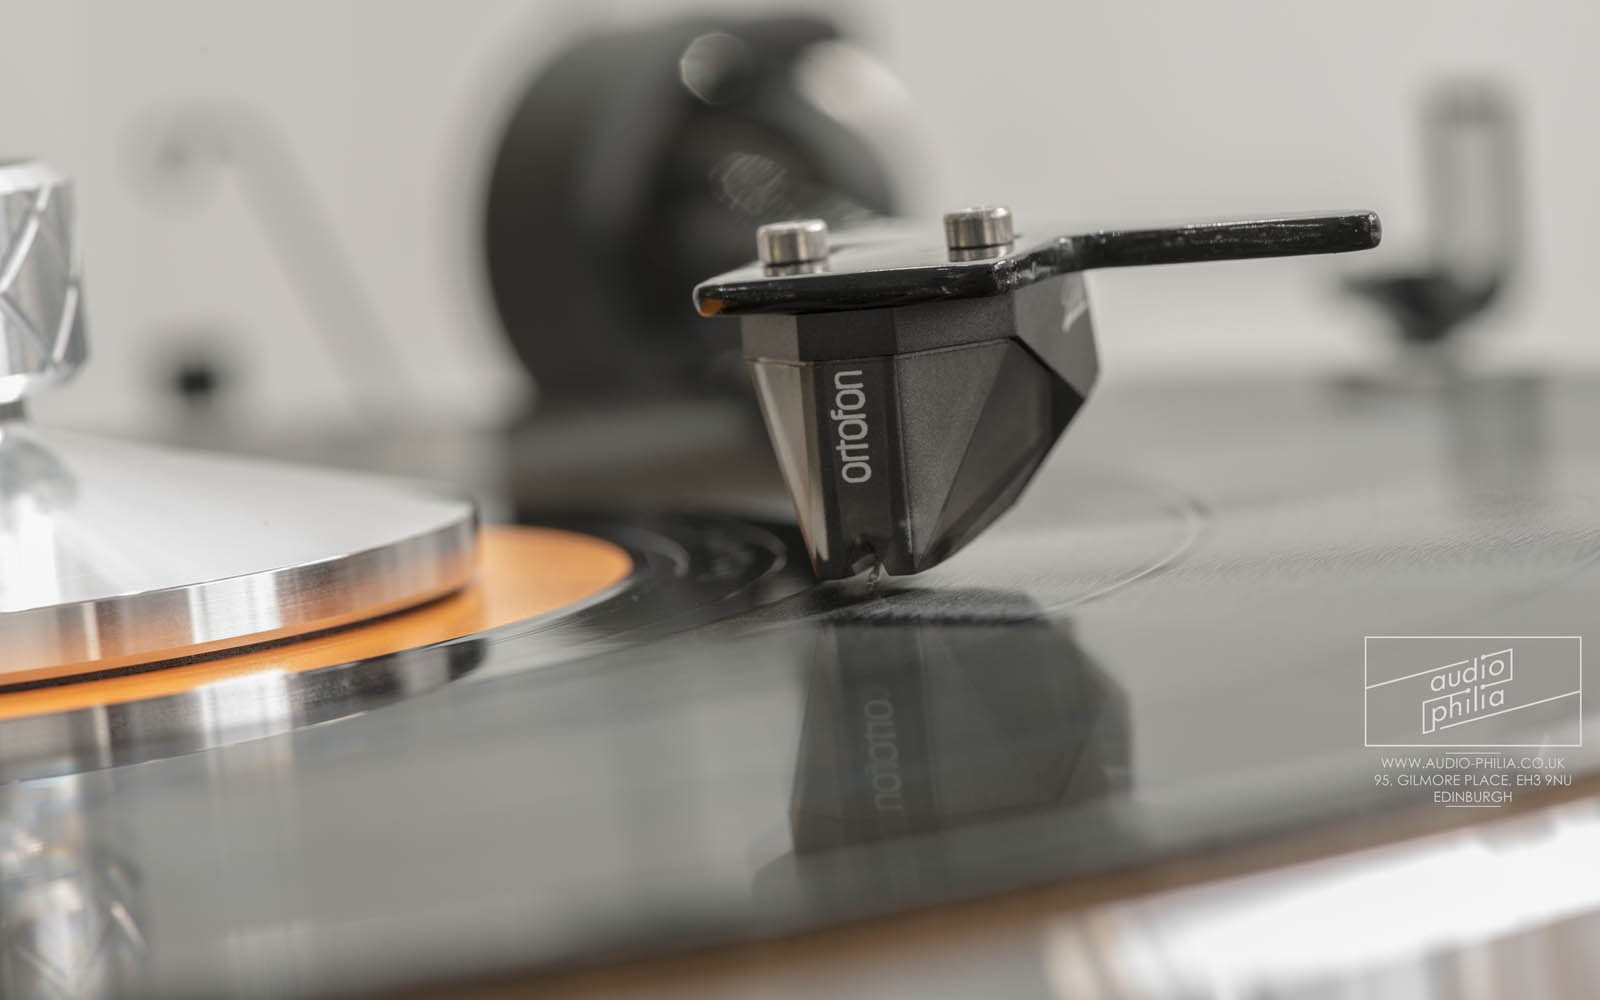 Pro-Ject The Classic Turntable with Ortofon 2M Silver Cartridge